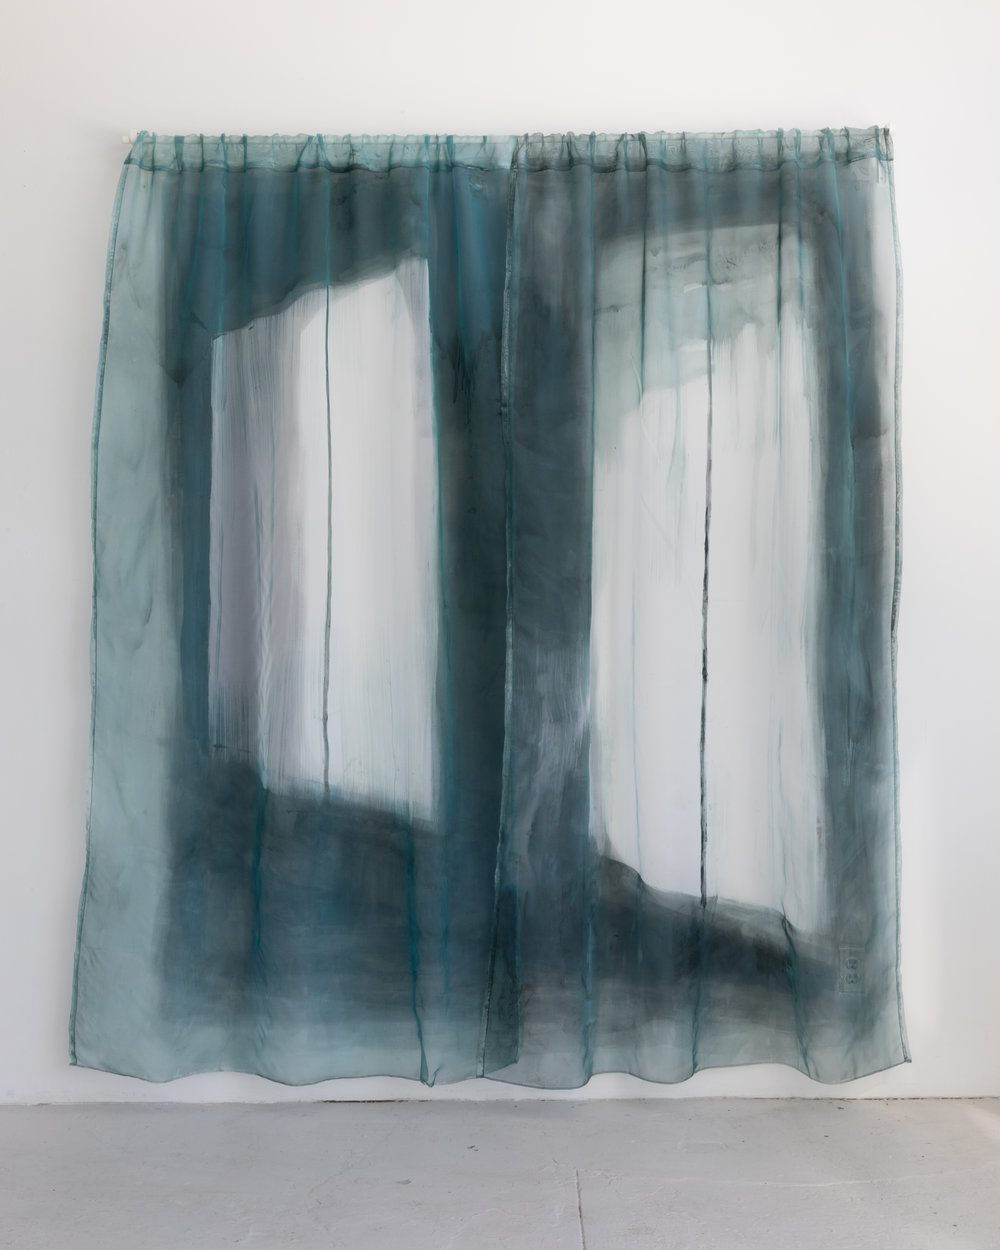 Aglae Bassens, Lone Curtains